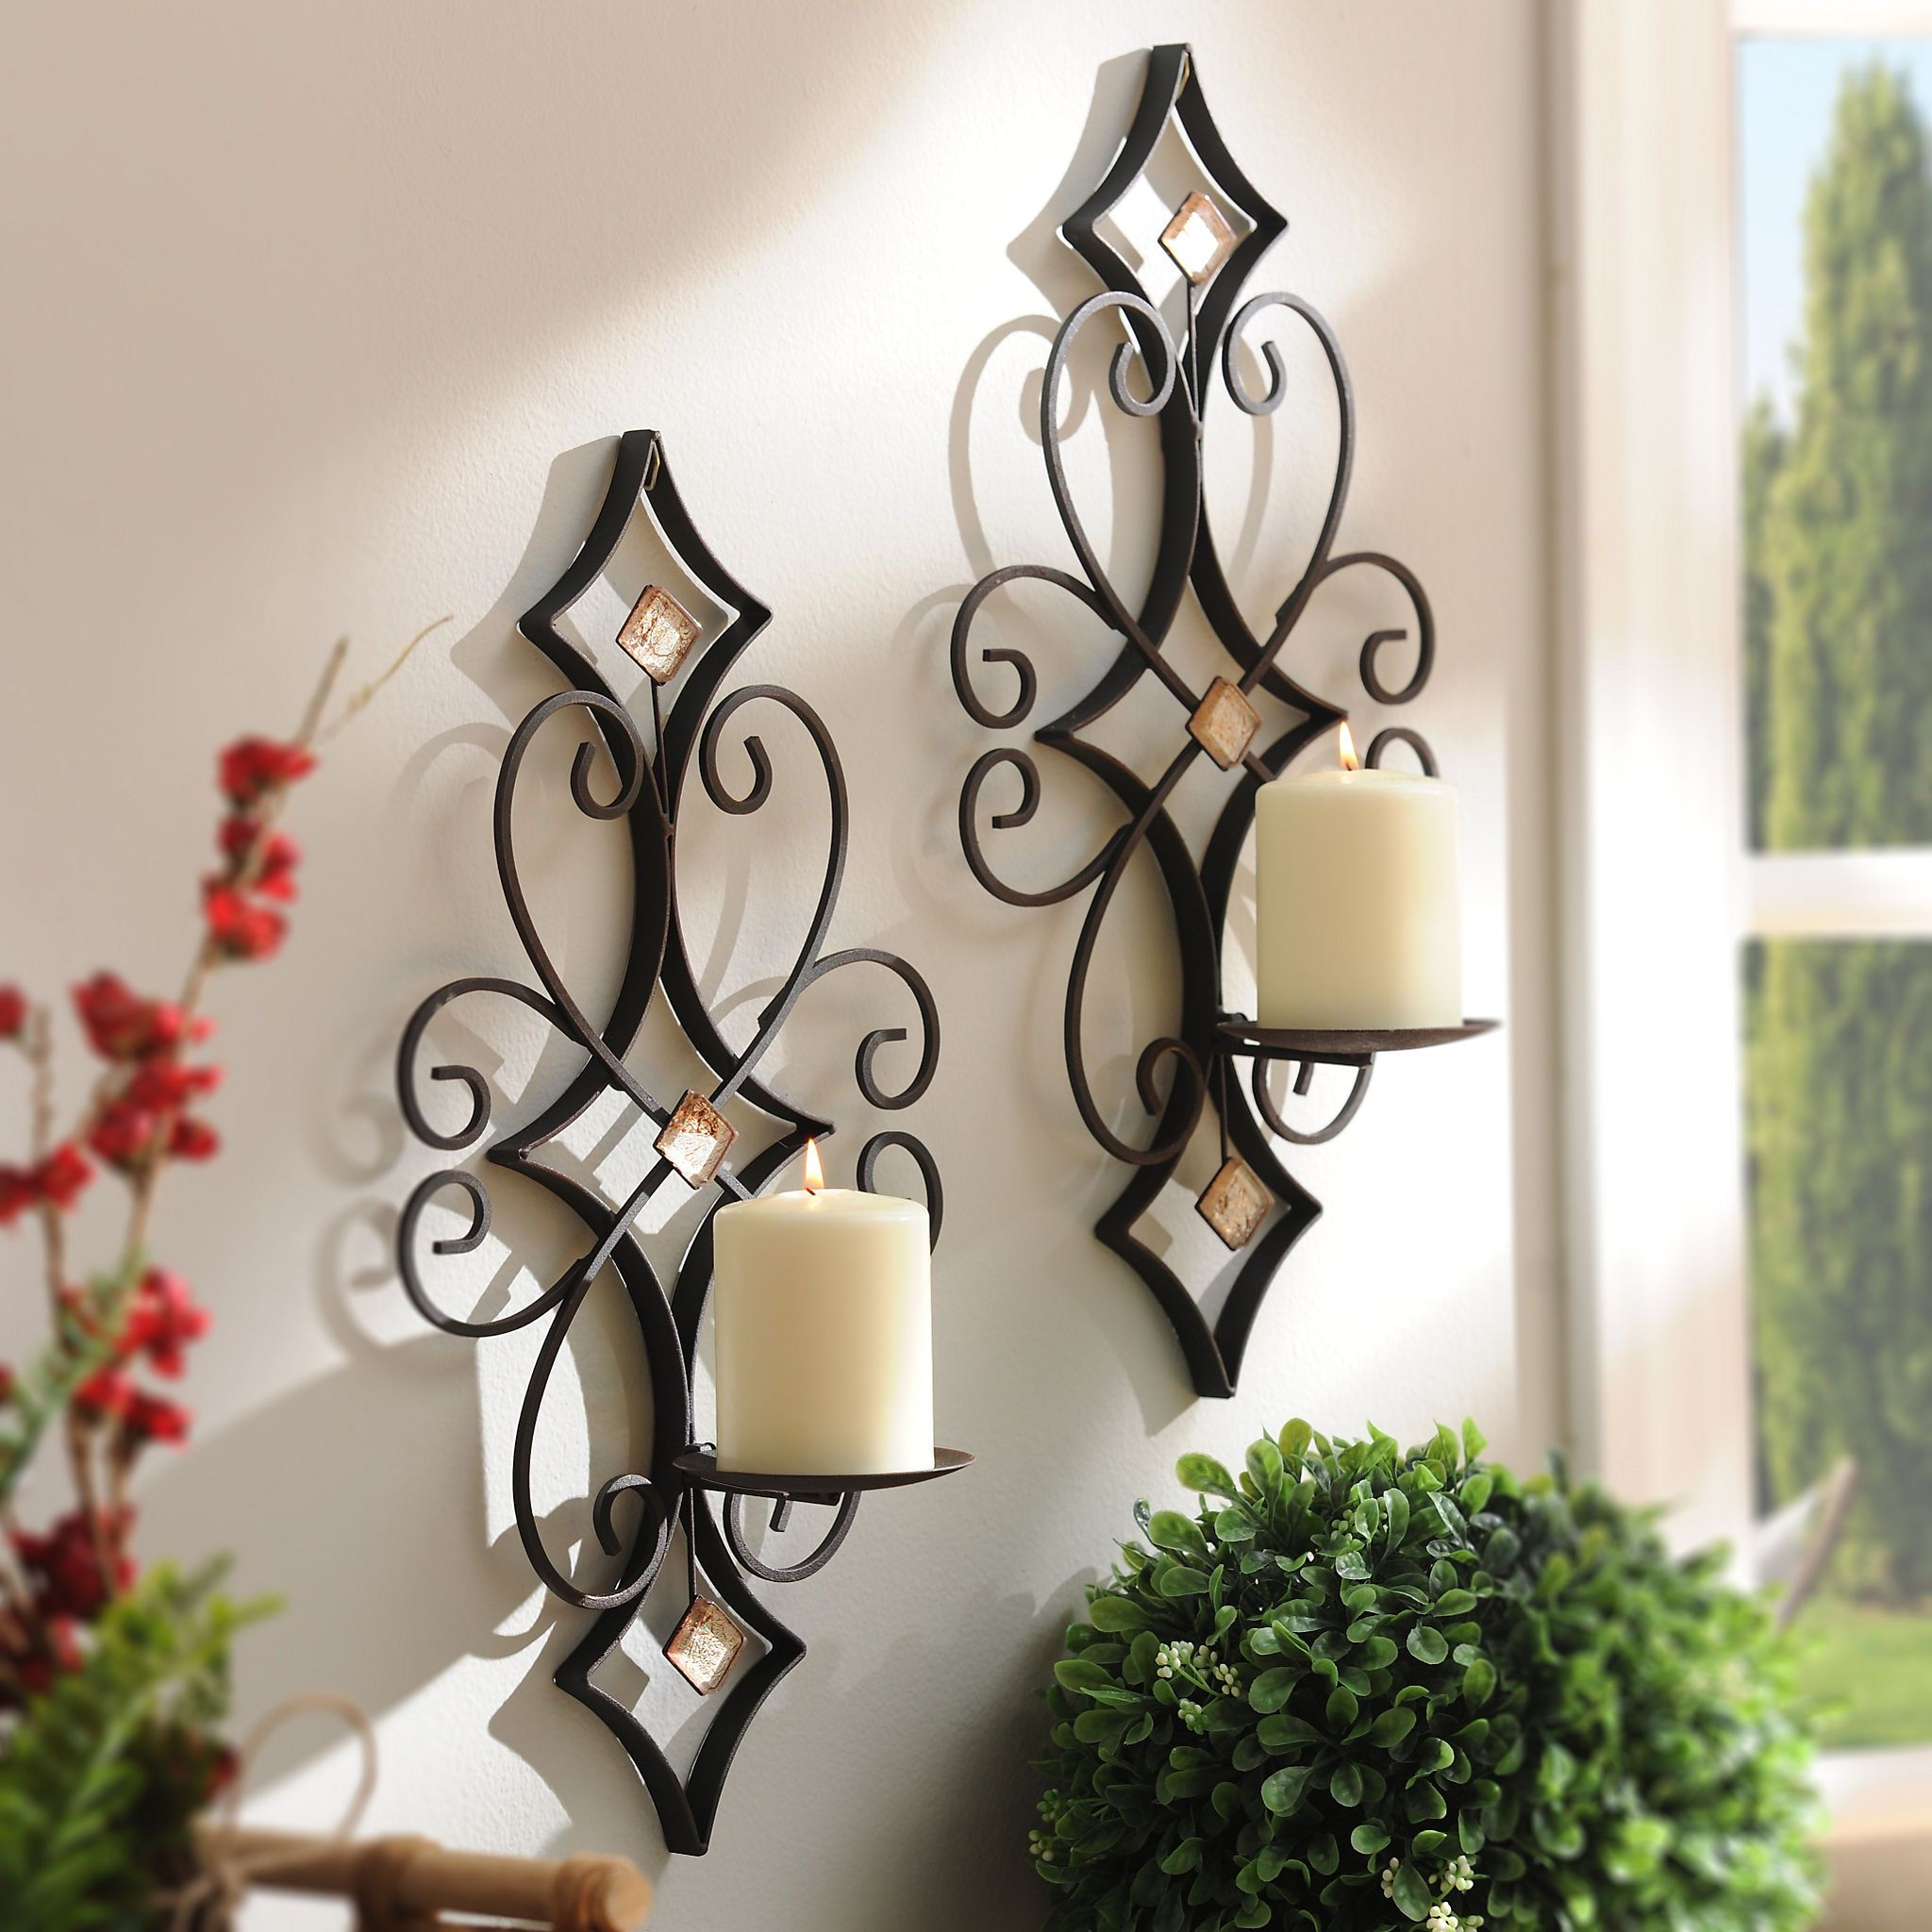 Laney Bling Sconces, Set of 2 | Farmhouse wall sconces ... on Non Electric Wall Sconces For Candles id=63433